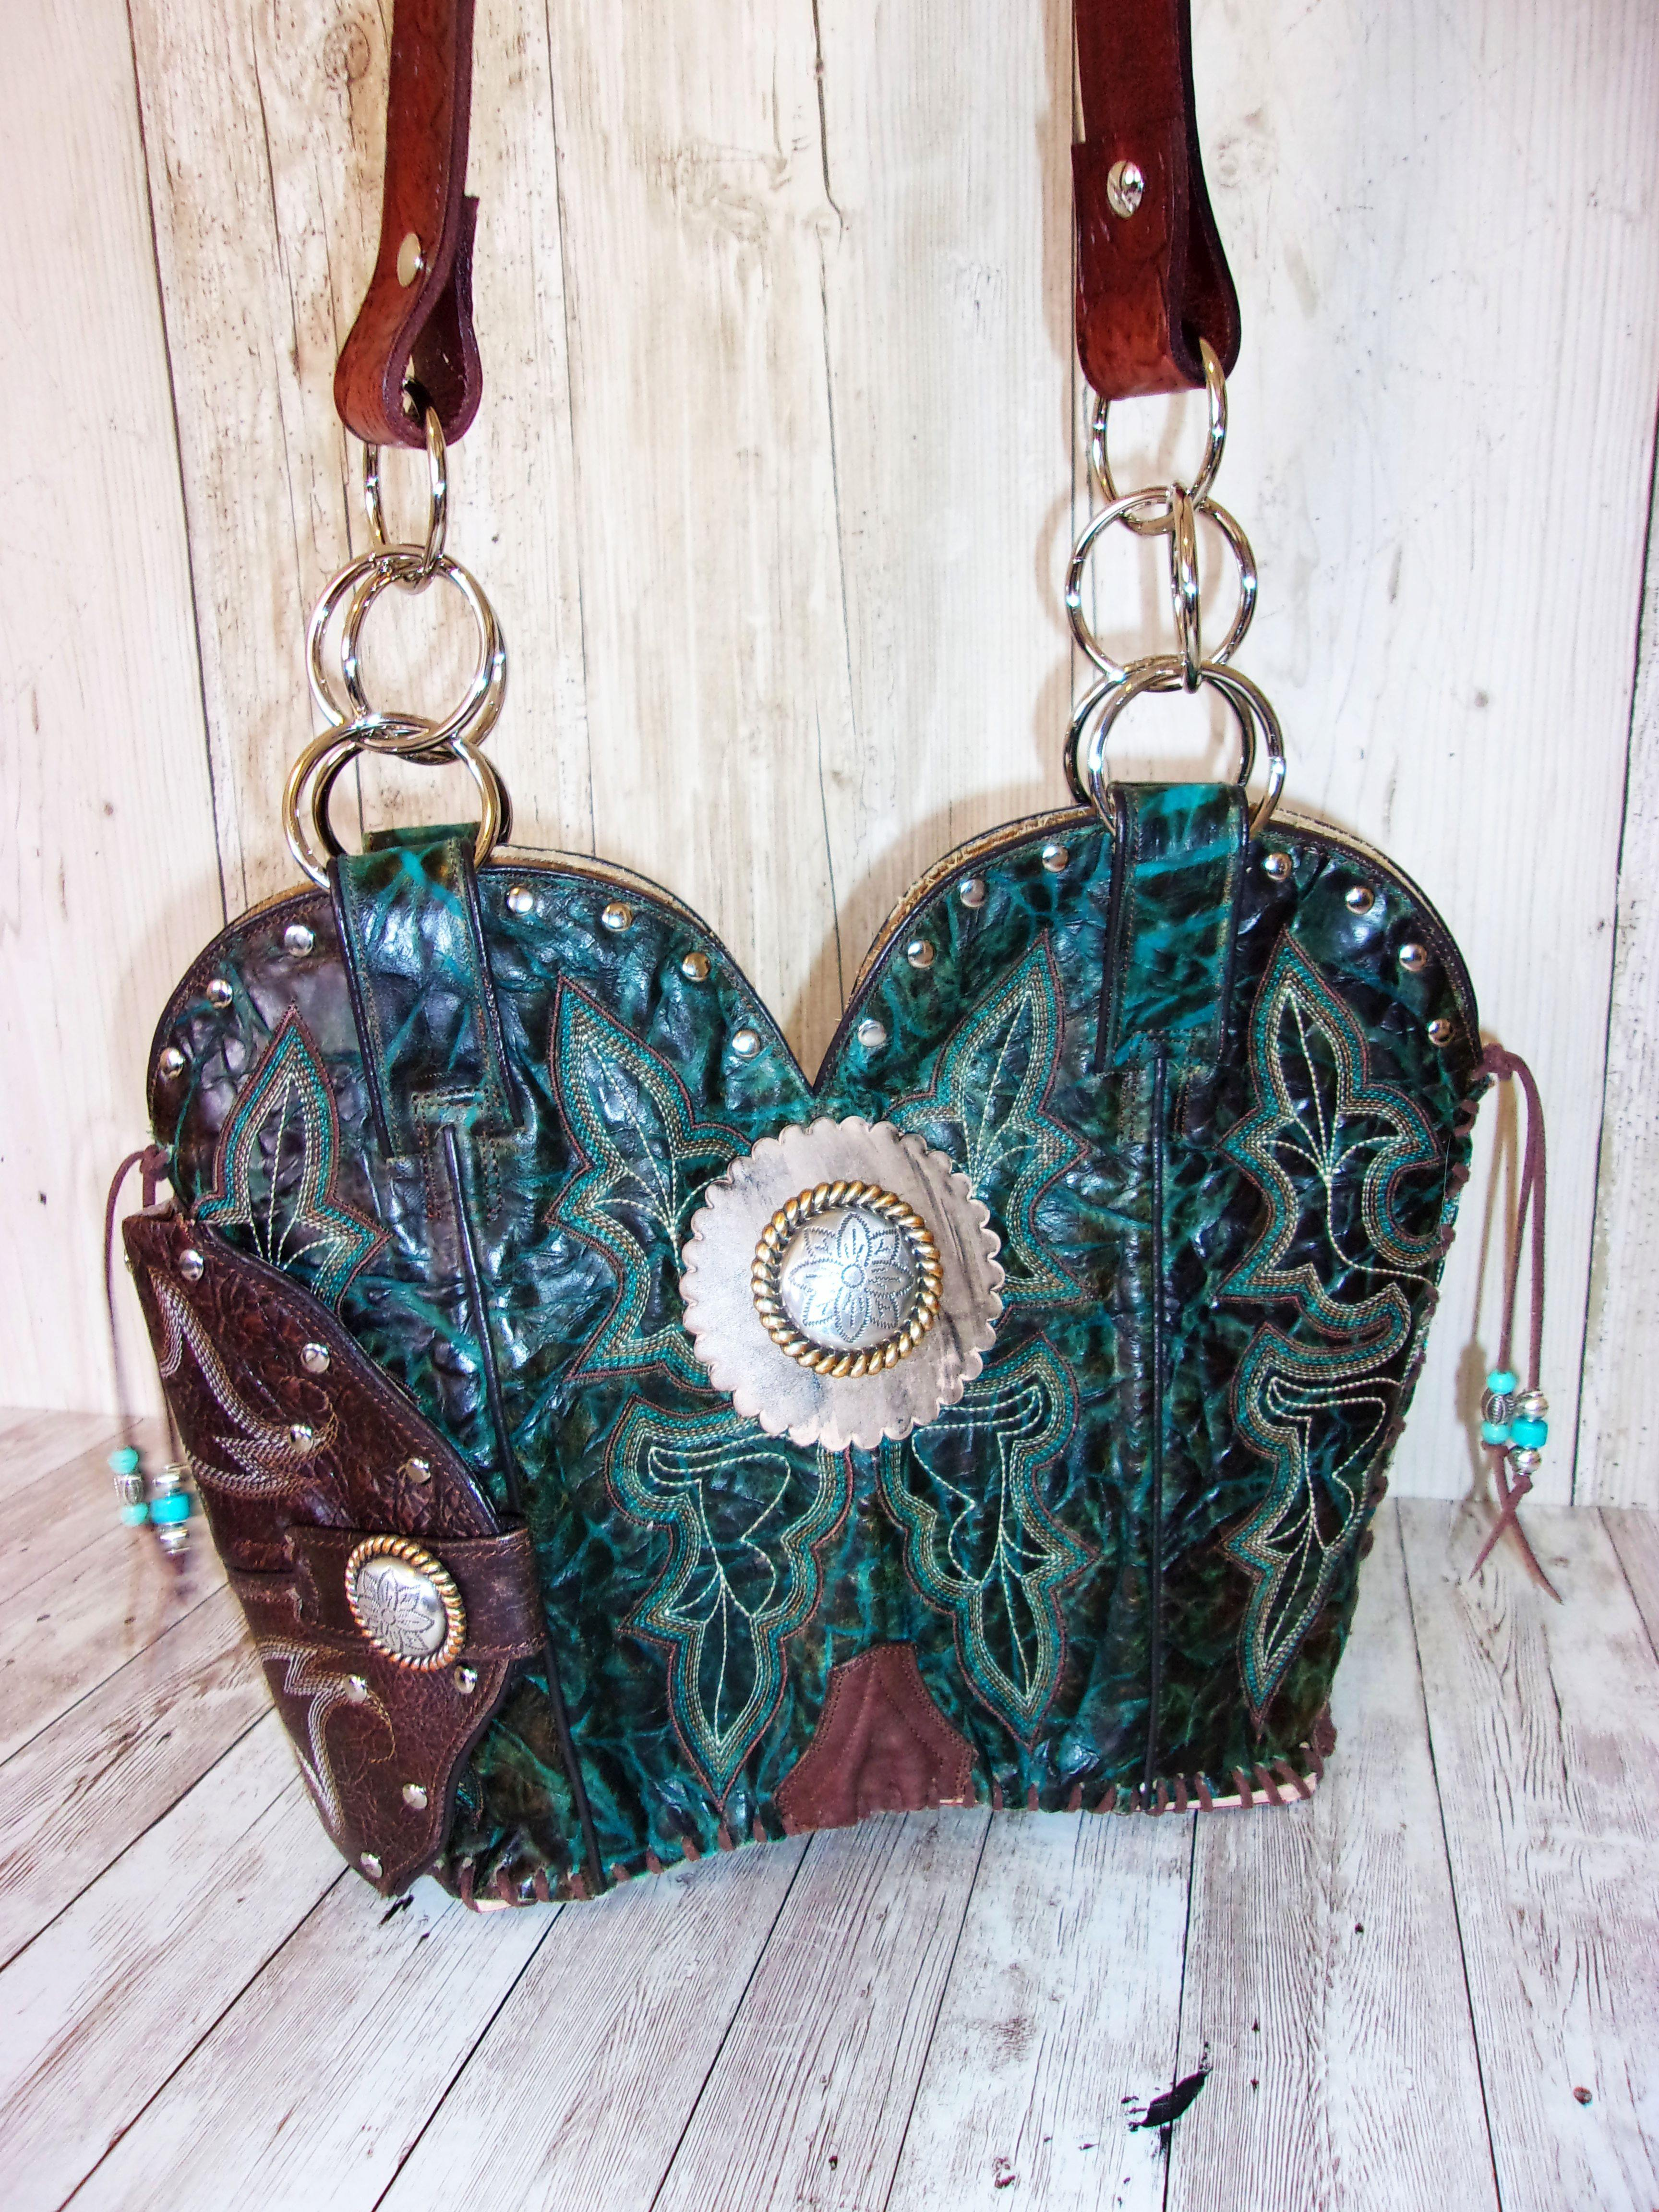 Western Concealed Carry Purse - CC Purse - Western Gun Purse - Handcrafted Conceal Carry Purse - Cowboy Boot Purse CB83 cowboy boot purses, western fringe purse, handmade leather purses, boot purse, handmade western purse, custom leather handbags Chris Thompson Bags